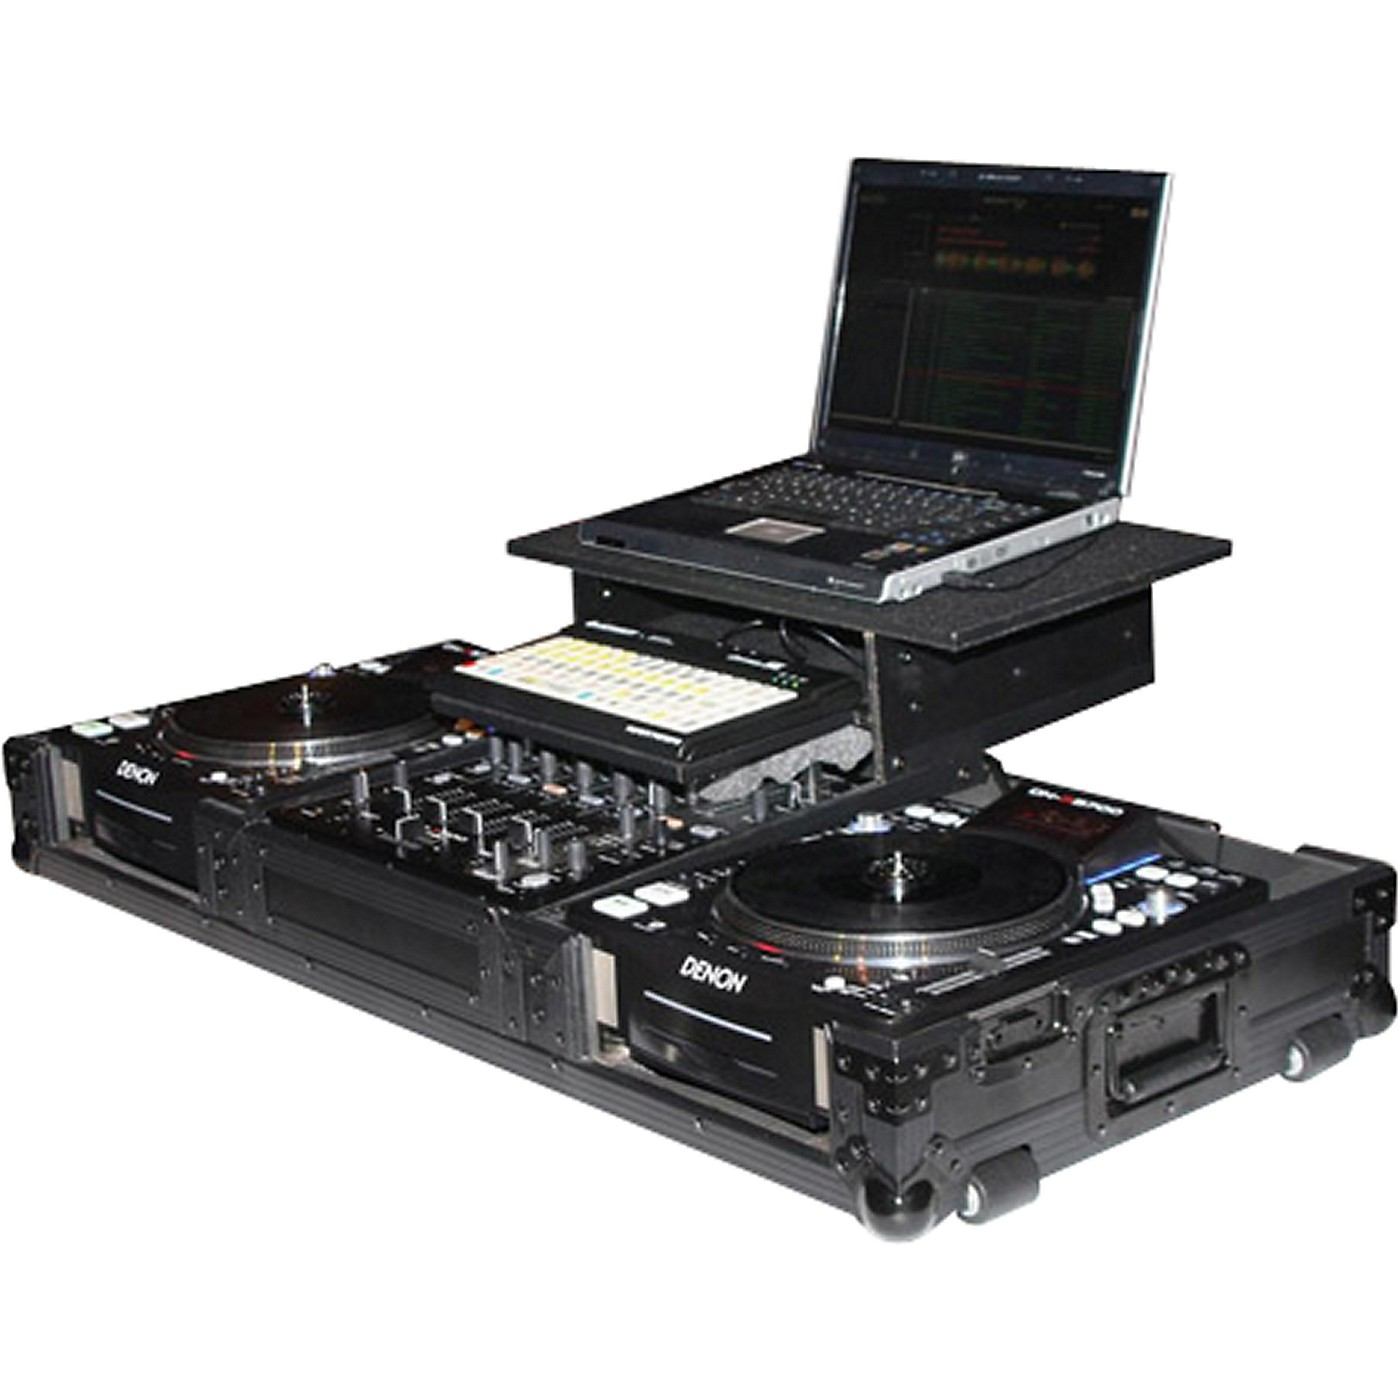 Odyssey ATA Black Label Coffin for Laptop, Two CD Players, and Mixer thumbnail